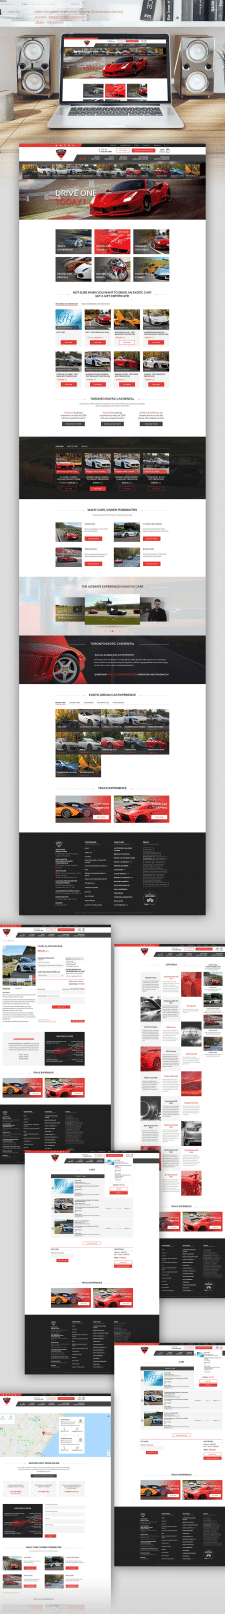 Site for a company for renting sports cars